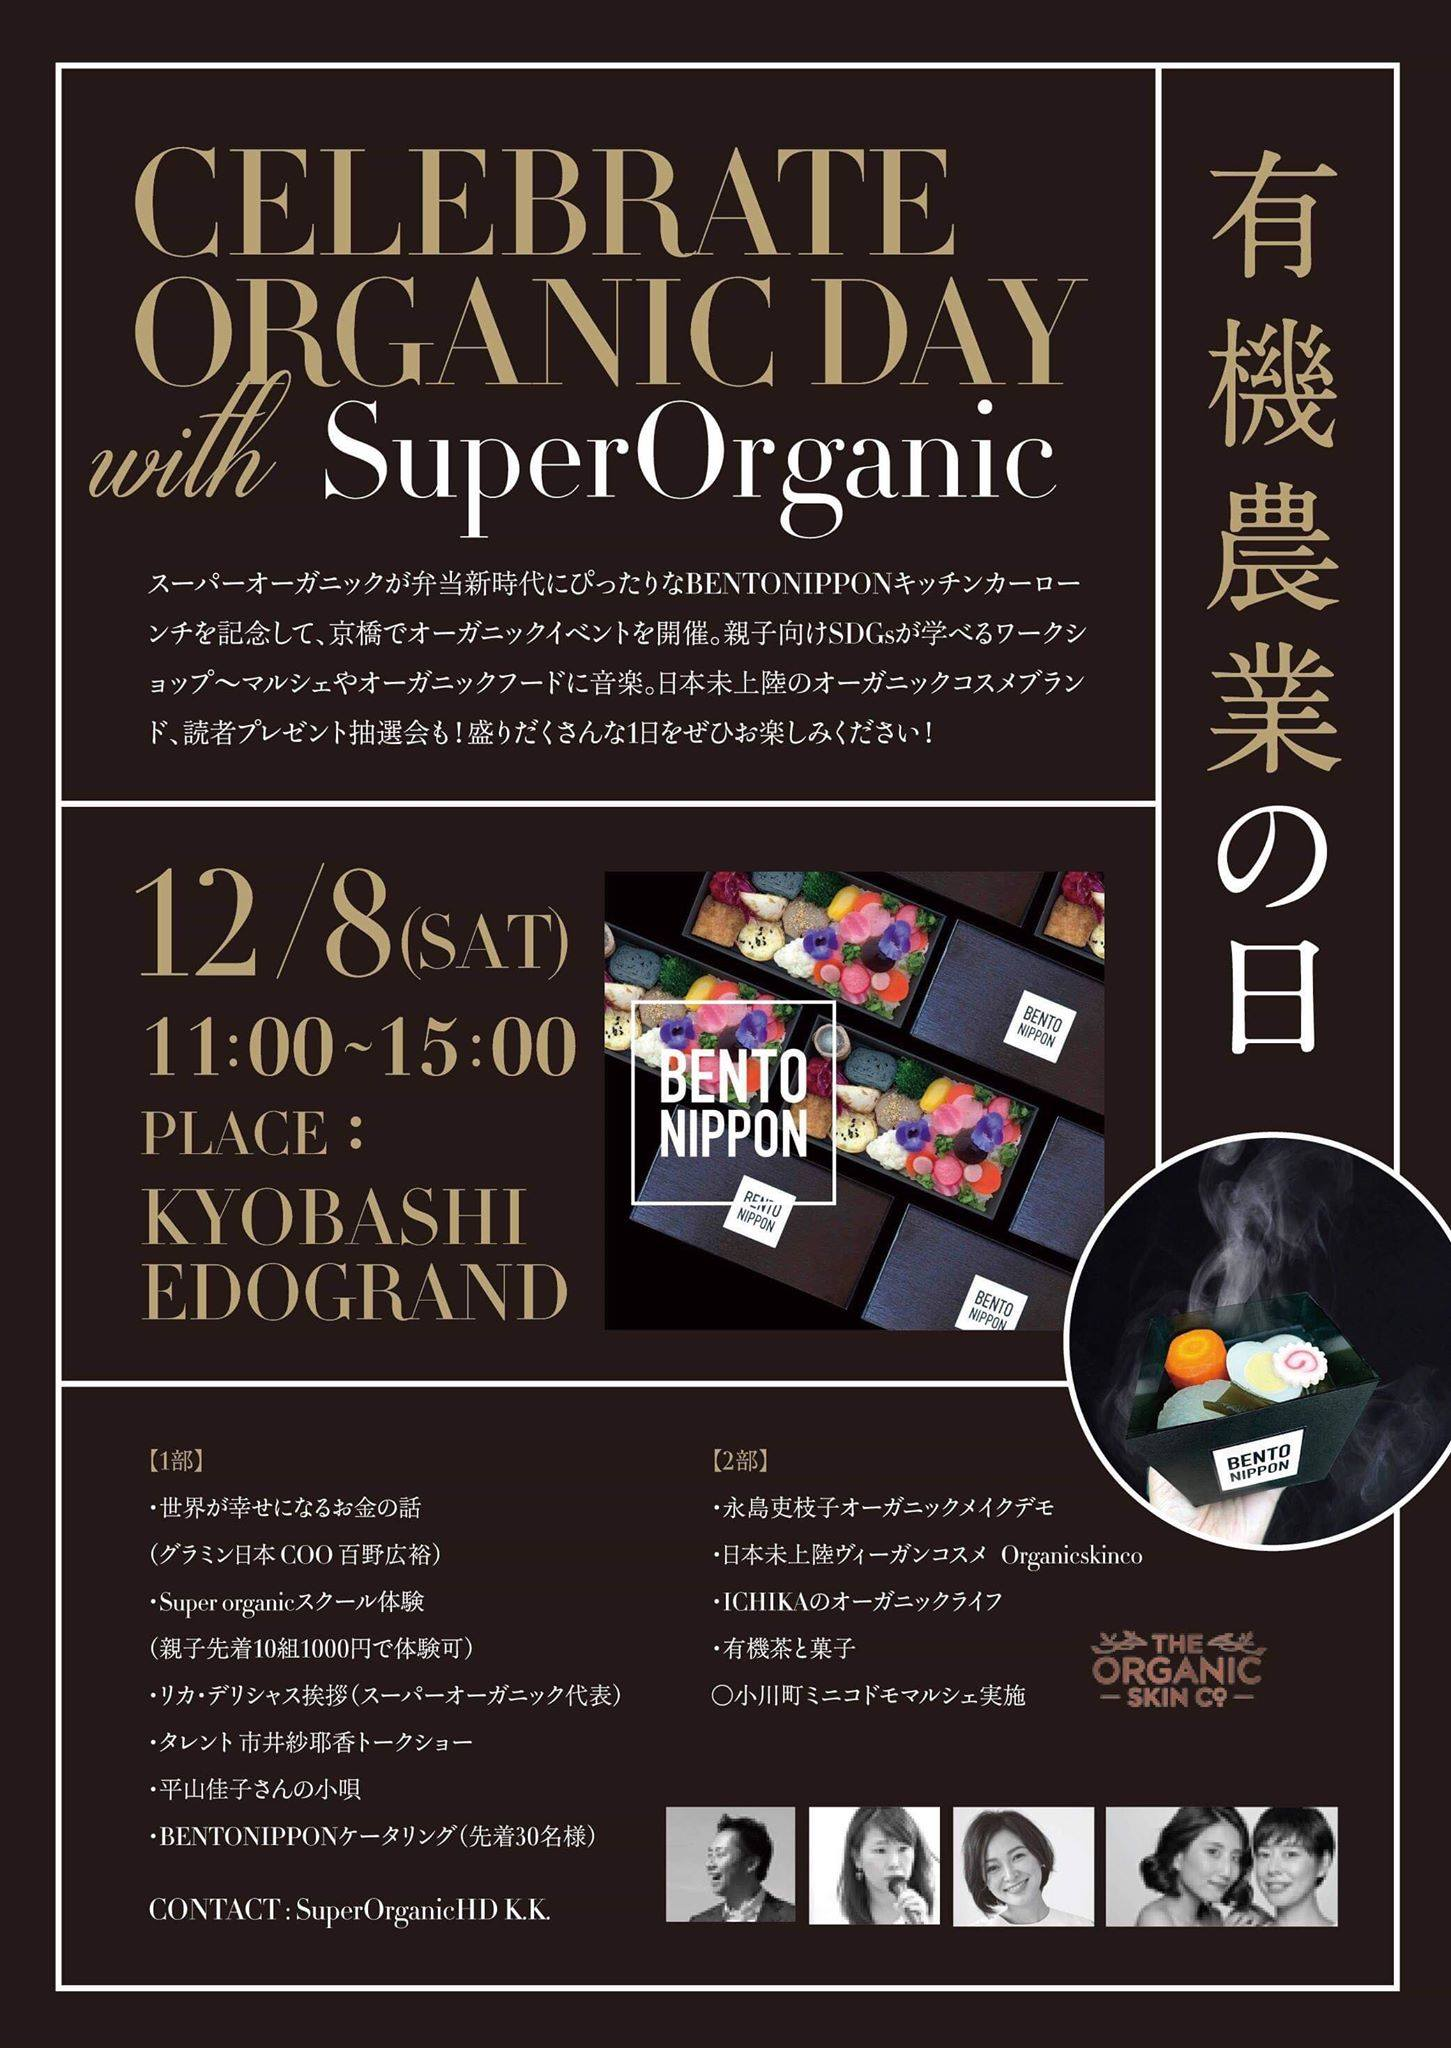 【終了】Celebrate Organic DAY with Super Organic@京橋エドグラン